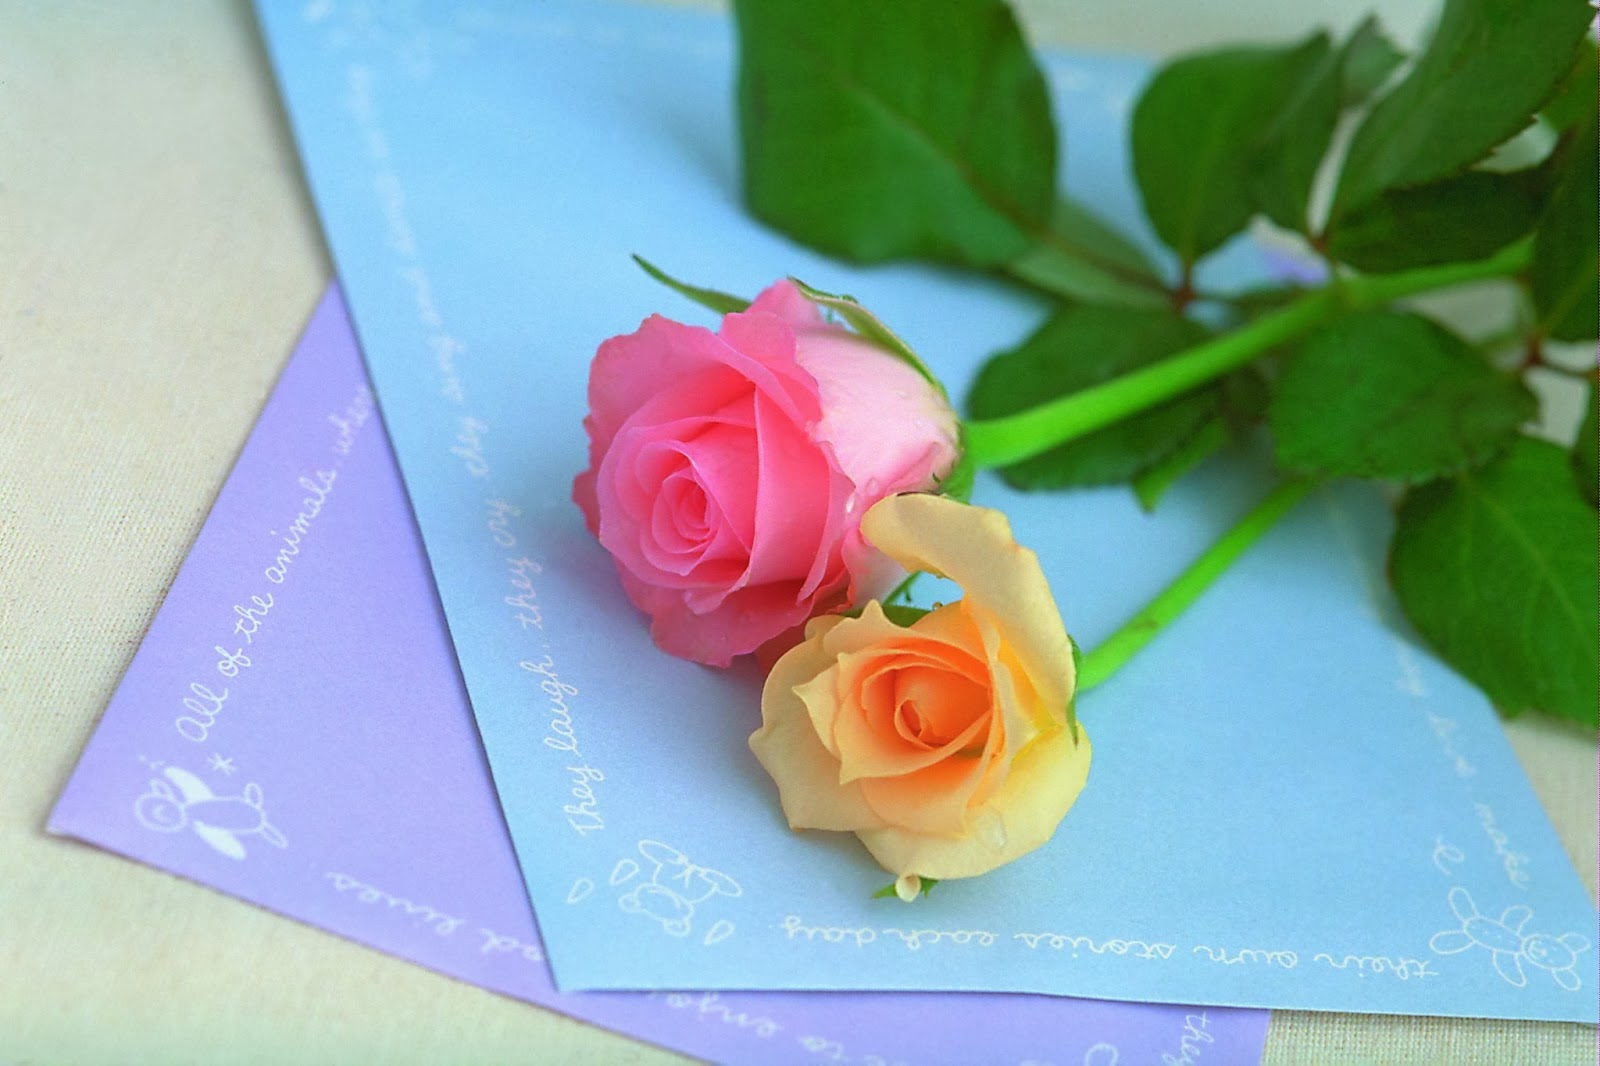 Hd wallpaper yellow rose - Happy Rose Day 2014 Hd Wallpapers And Images Pink And Yellow Rose